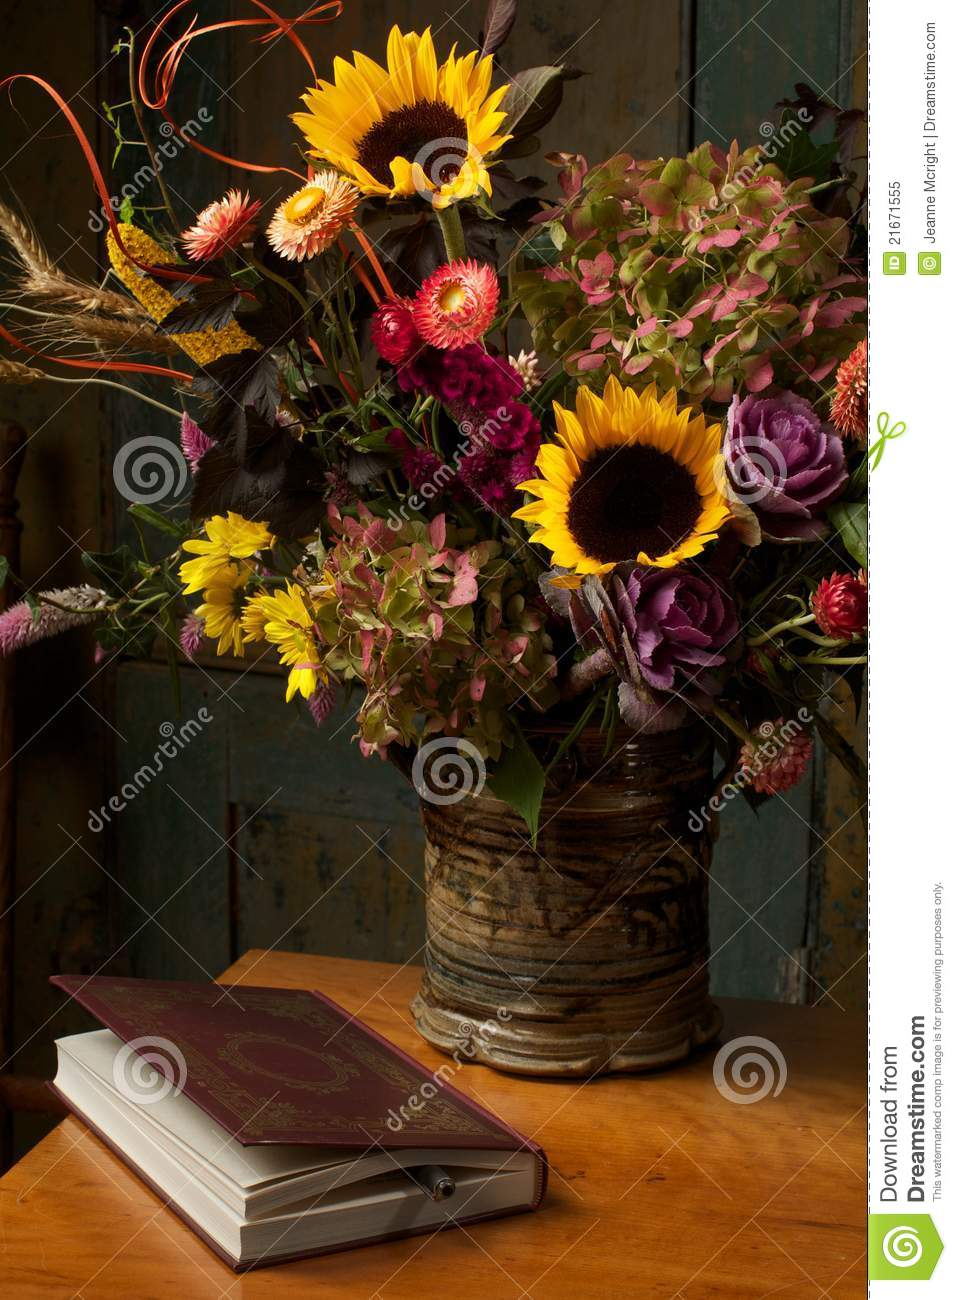 Rustic Still Life With Autumn Flowers And Book Stock Image Image 21671555